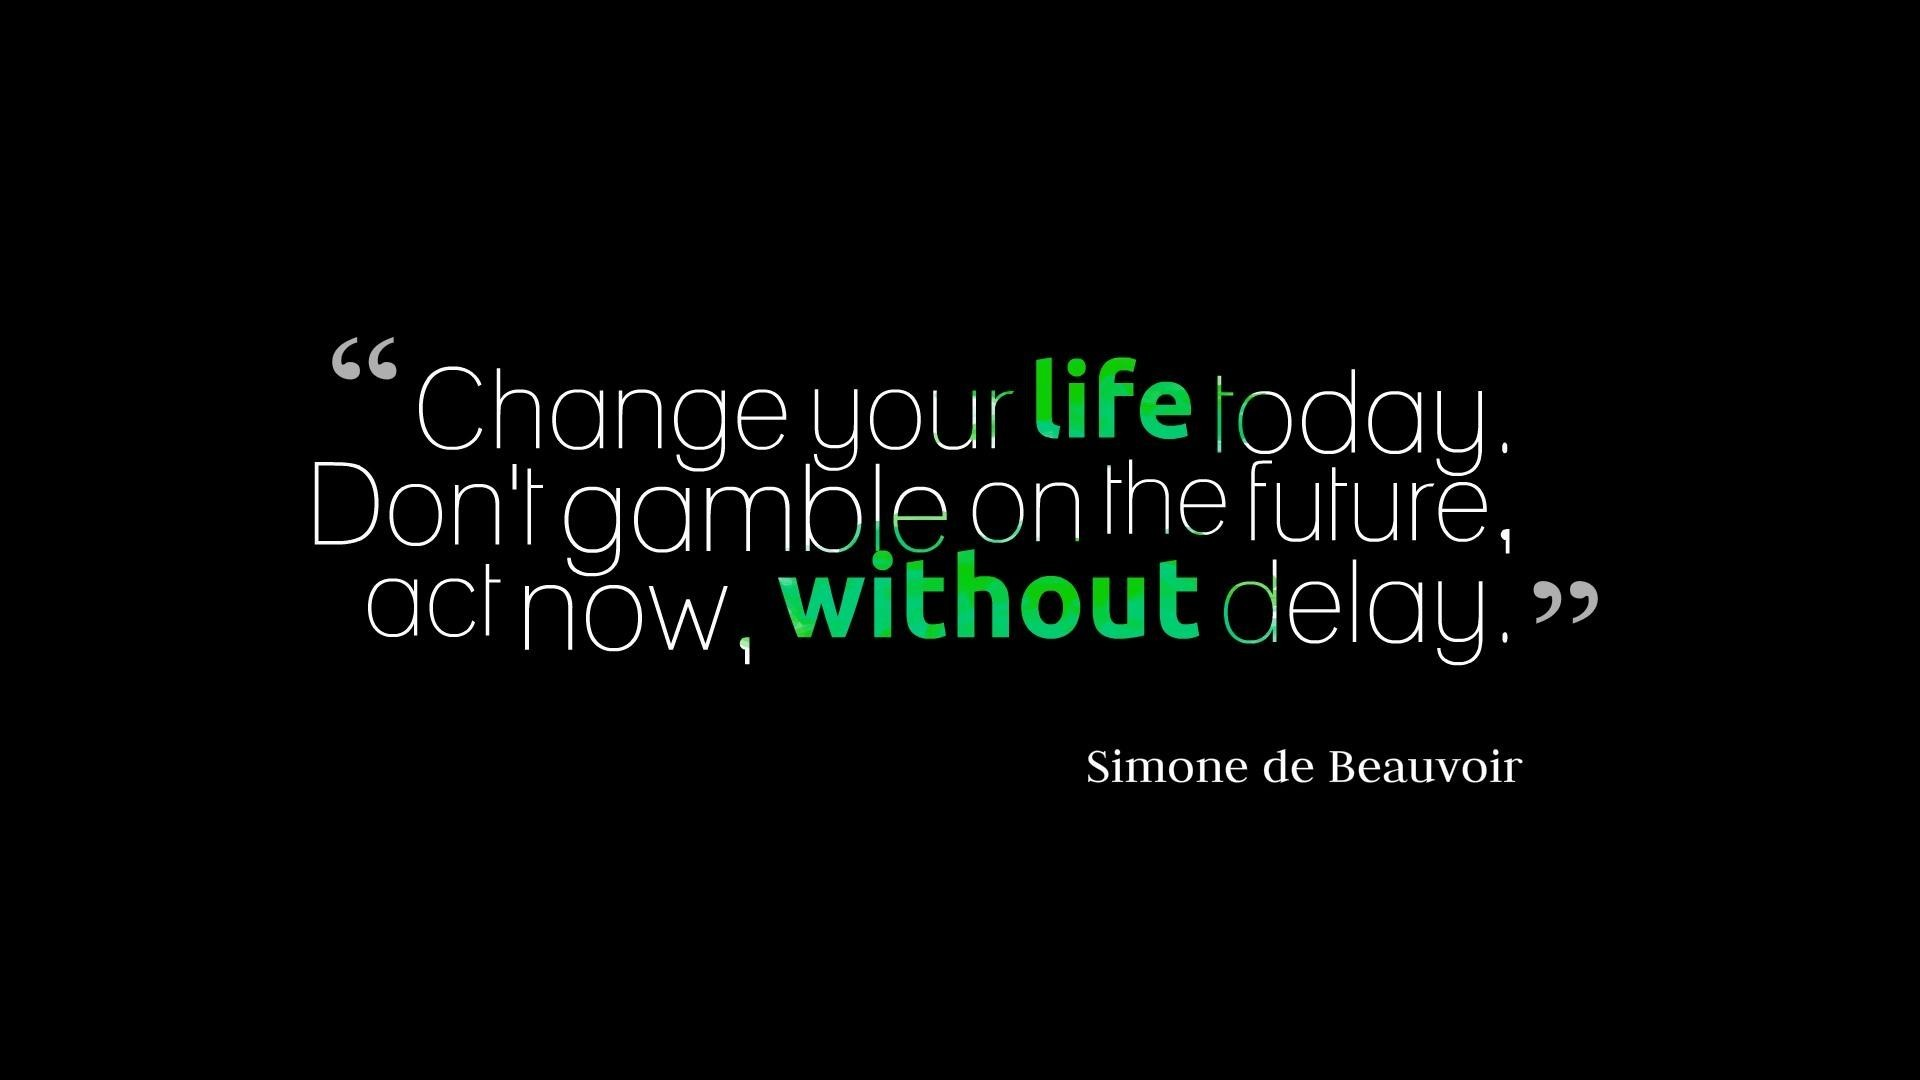 Text Quotes Today Change Motivational Wallpaper   MixHD wallpapers 1920x1080